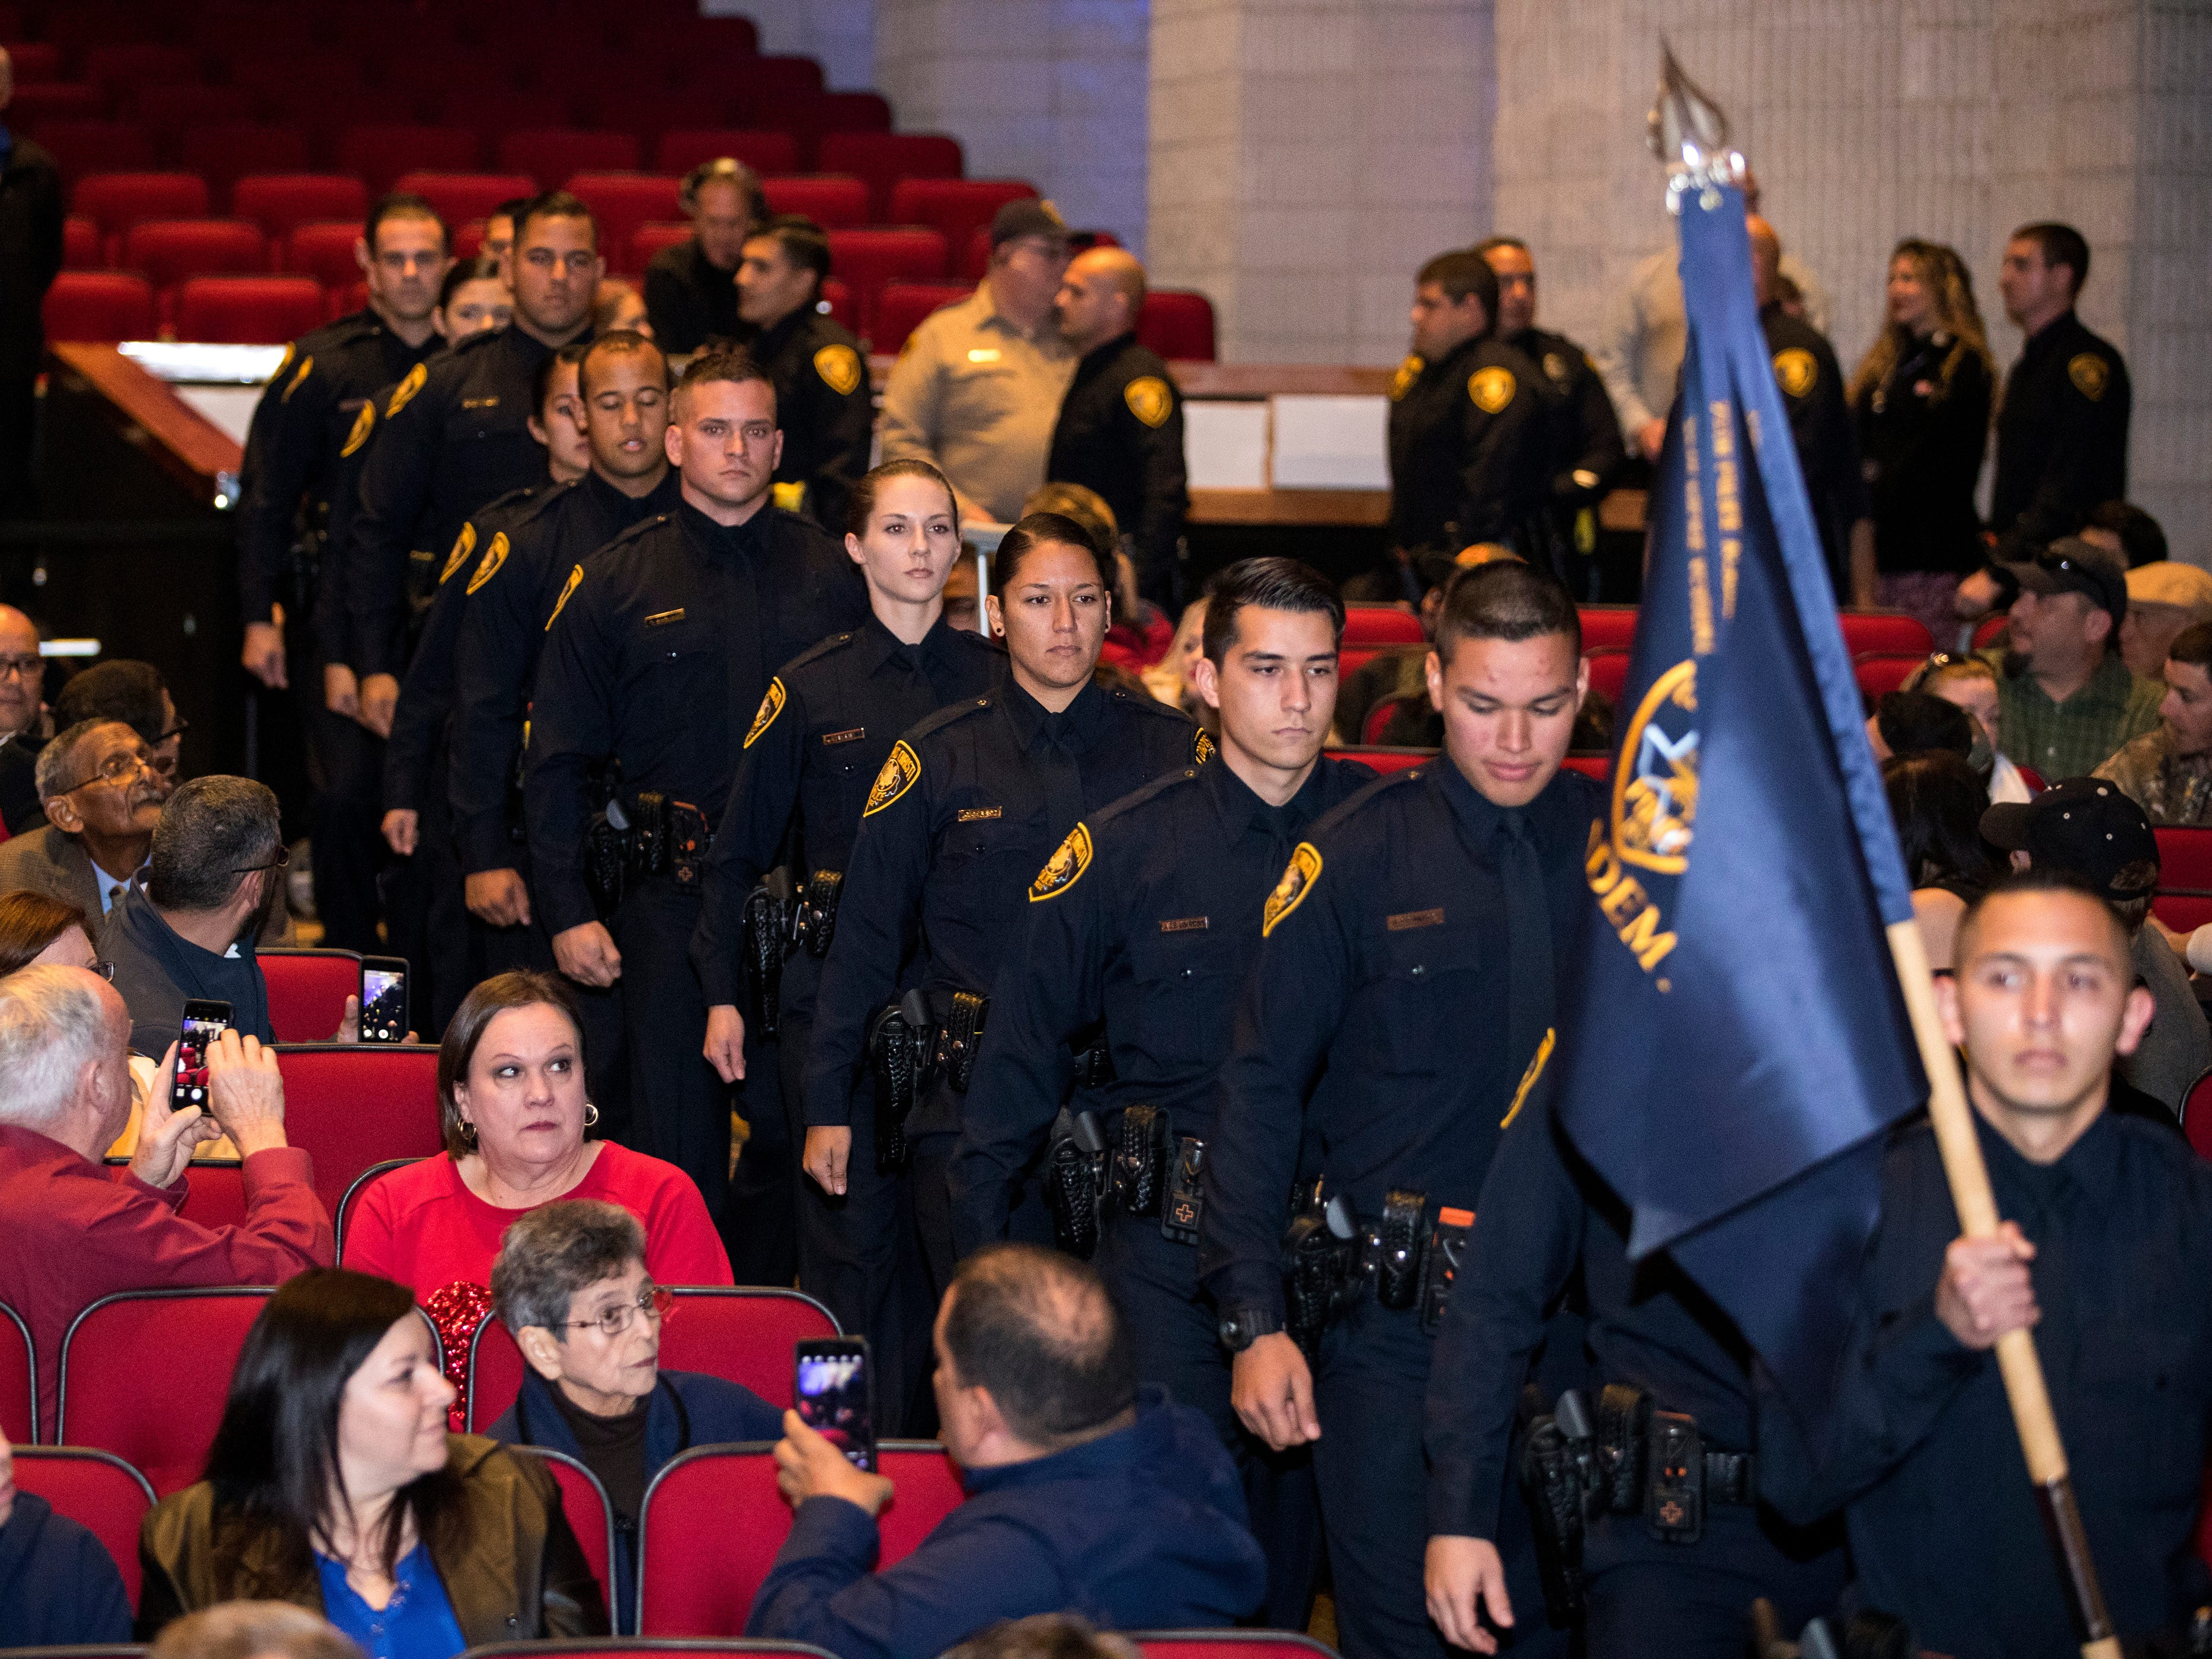 The 77th Corpus Christi Police Department Police Academy Graduates enter the Selena Auditorium for graduation on Friday, February, 8, 2019.